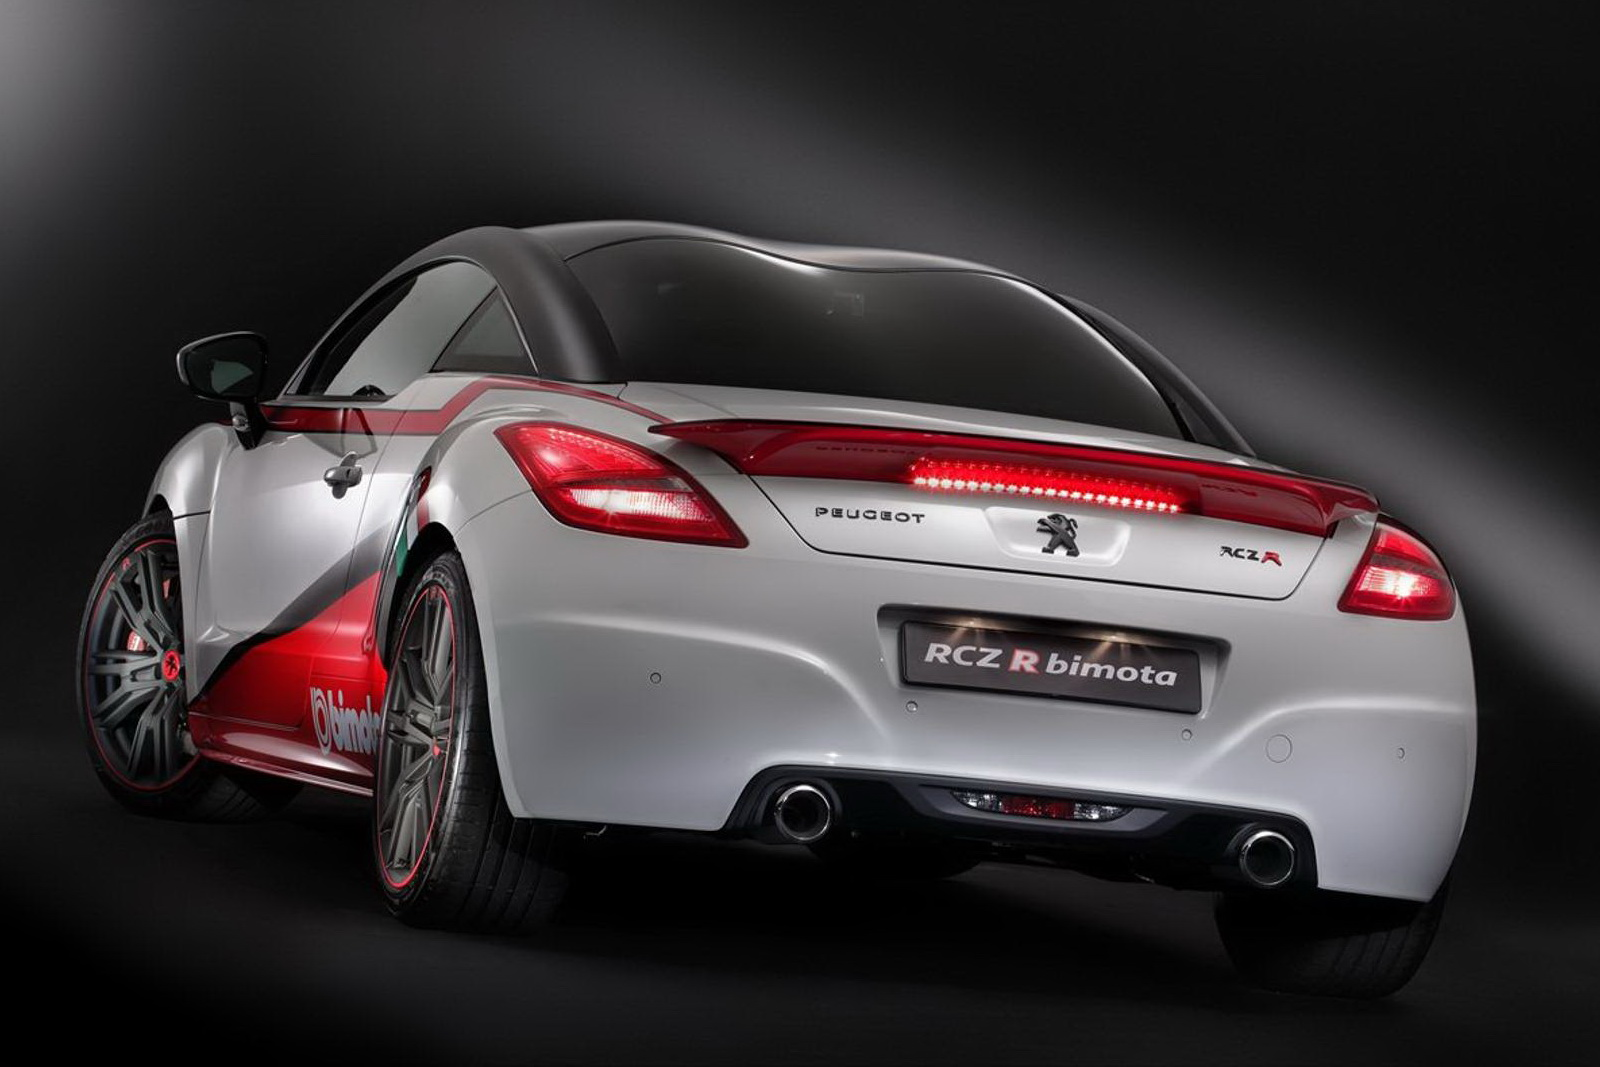 official 2015 peugeot rcz r bimoto special edition gtspirit. Black Bedroom Furniture Sets. Home Design Ideas